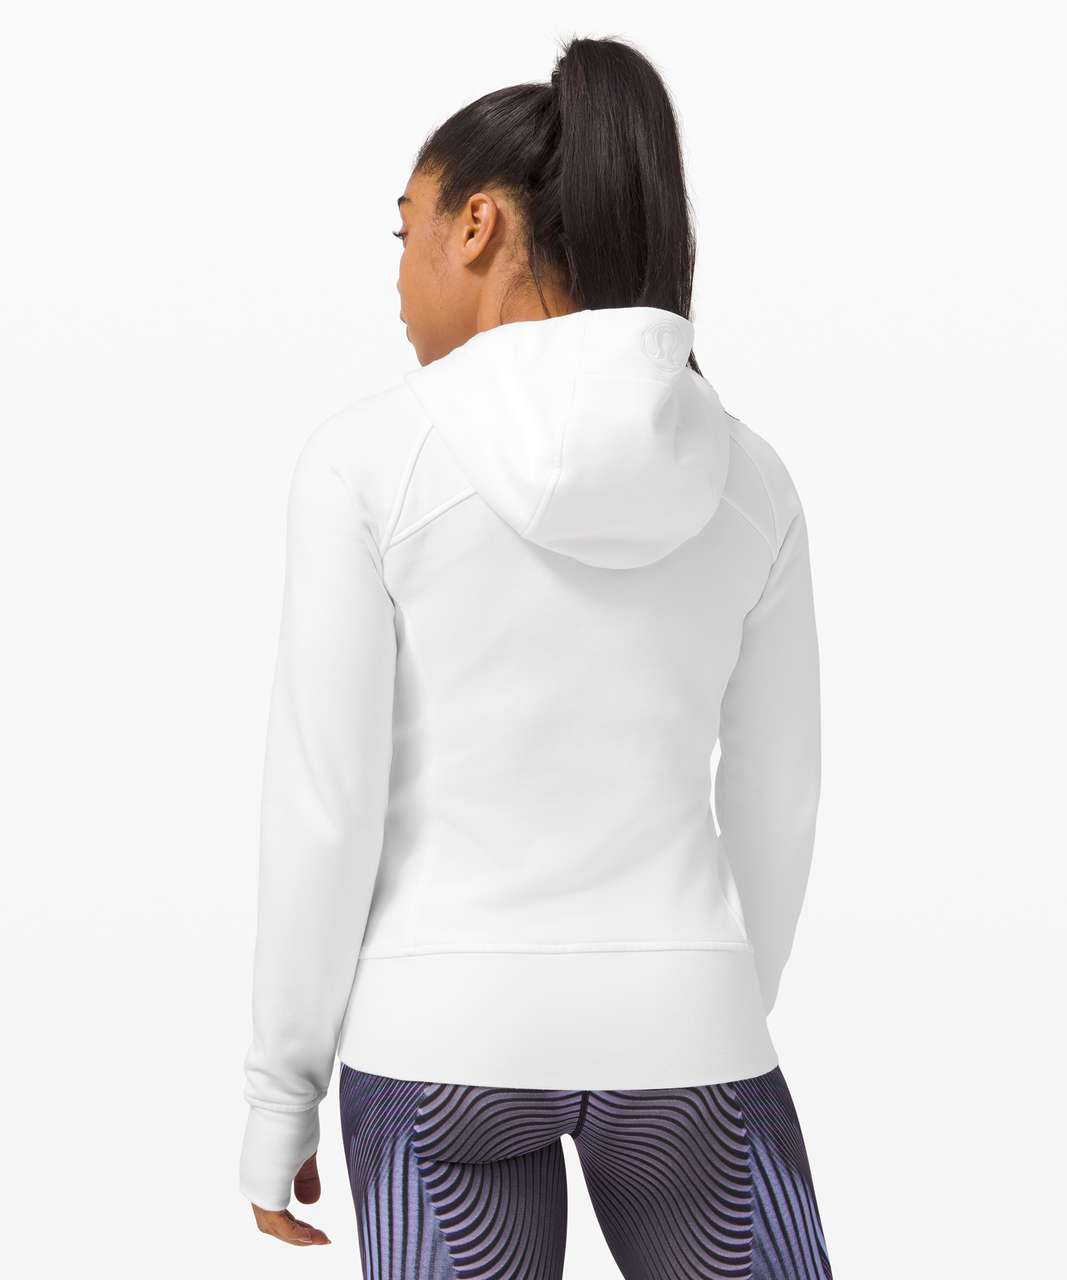 Lululemon Scuba Full Zip Hoodie *SeaWheeze - White